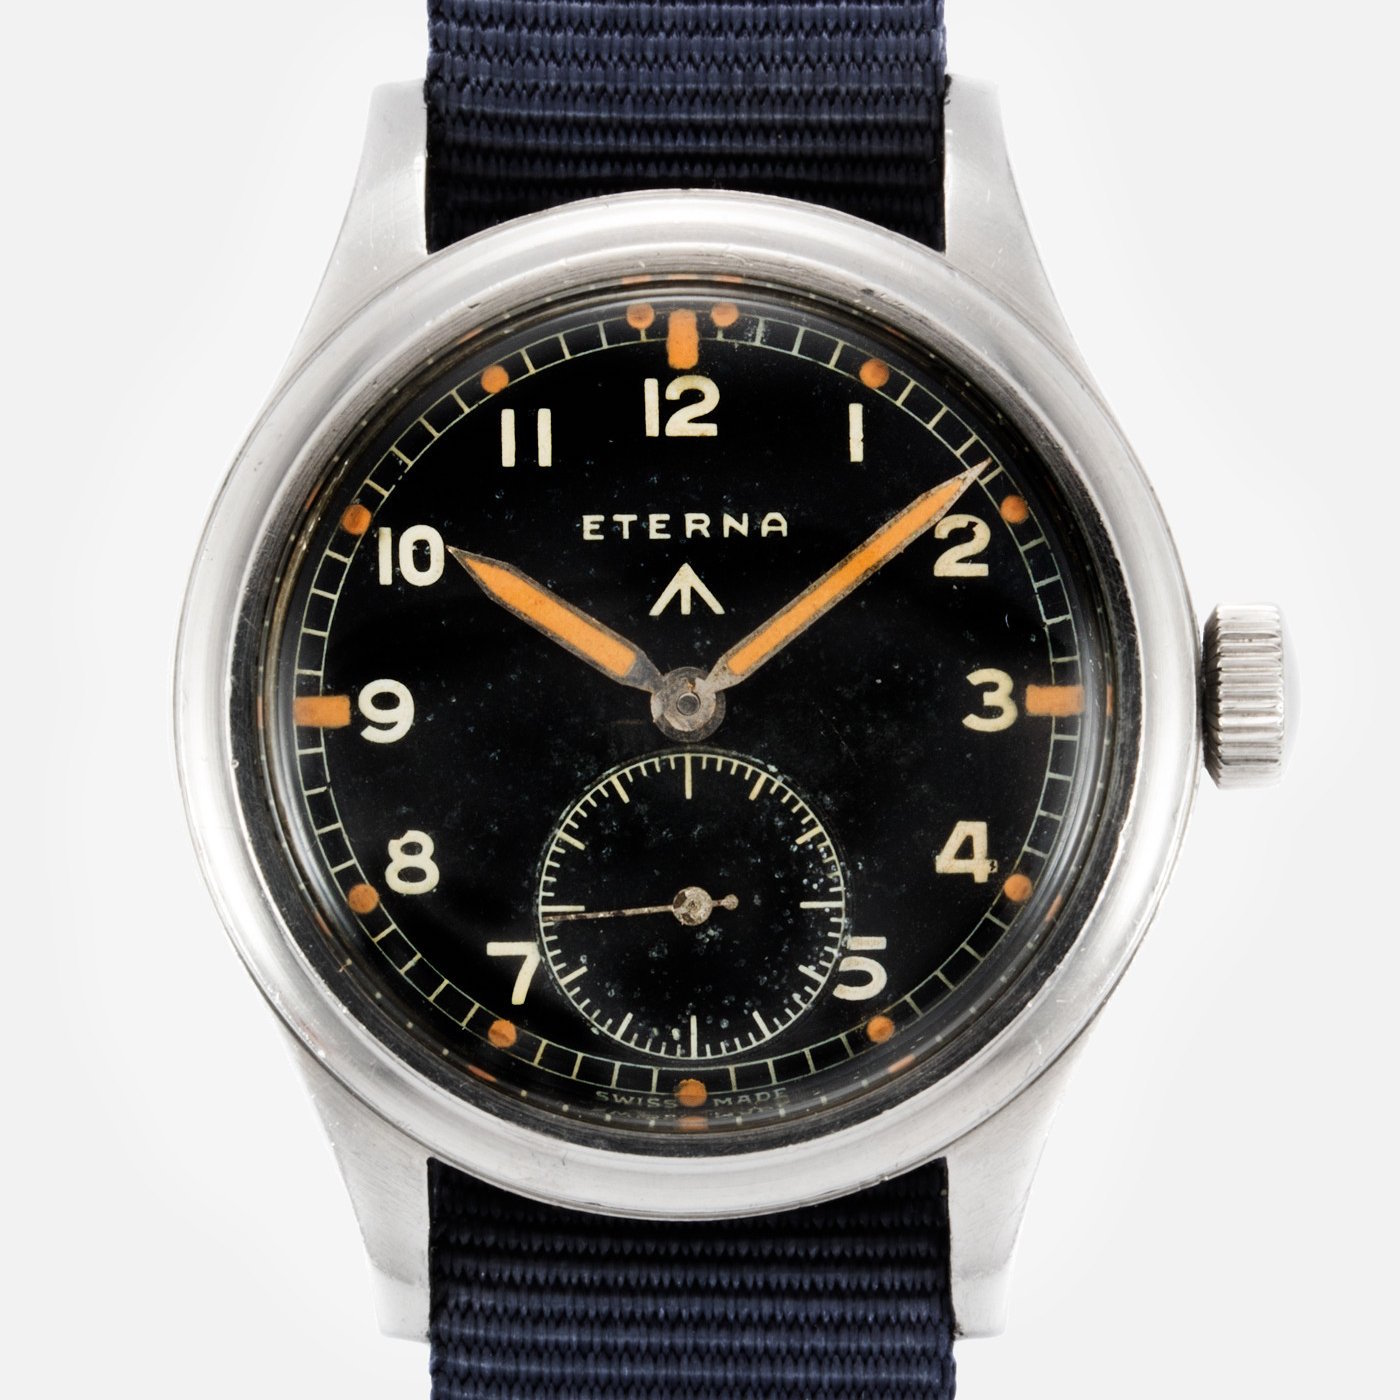 Eterna WWW Dirty Dozen